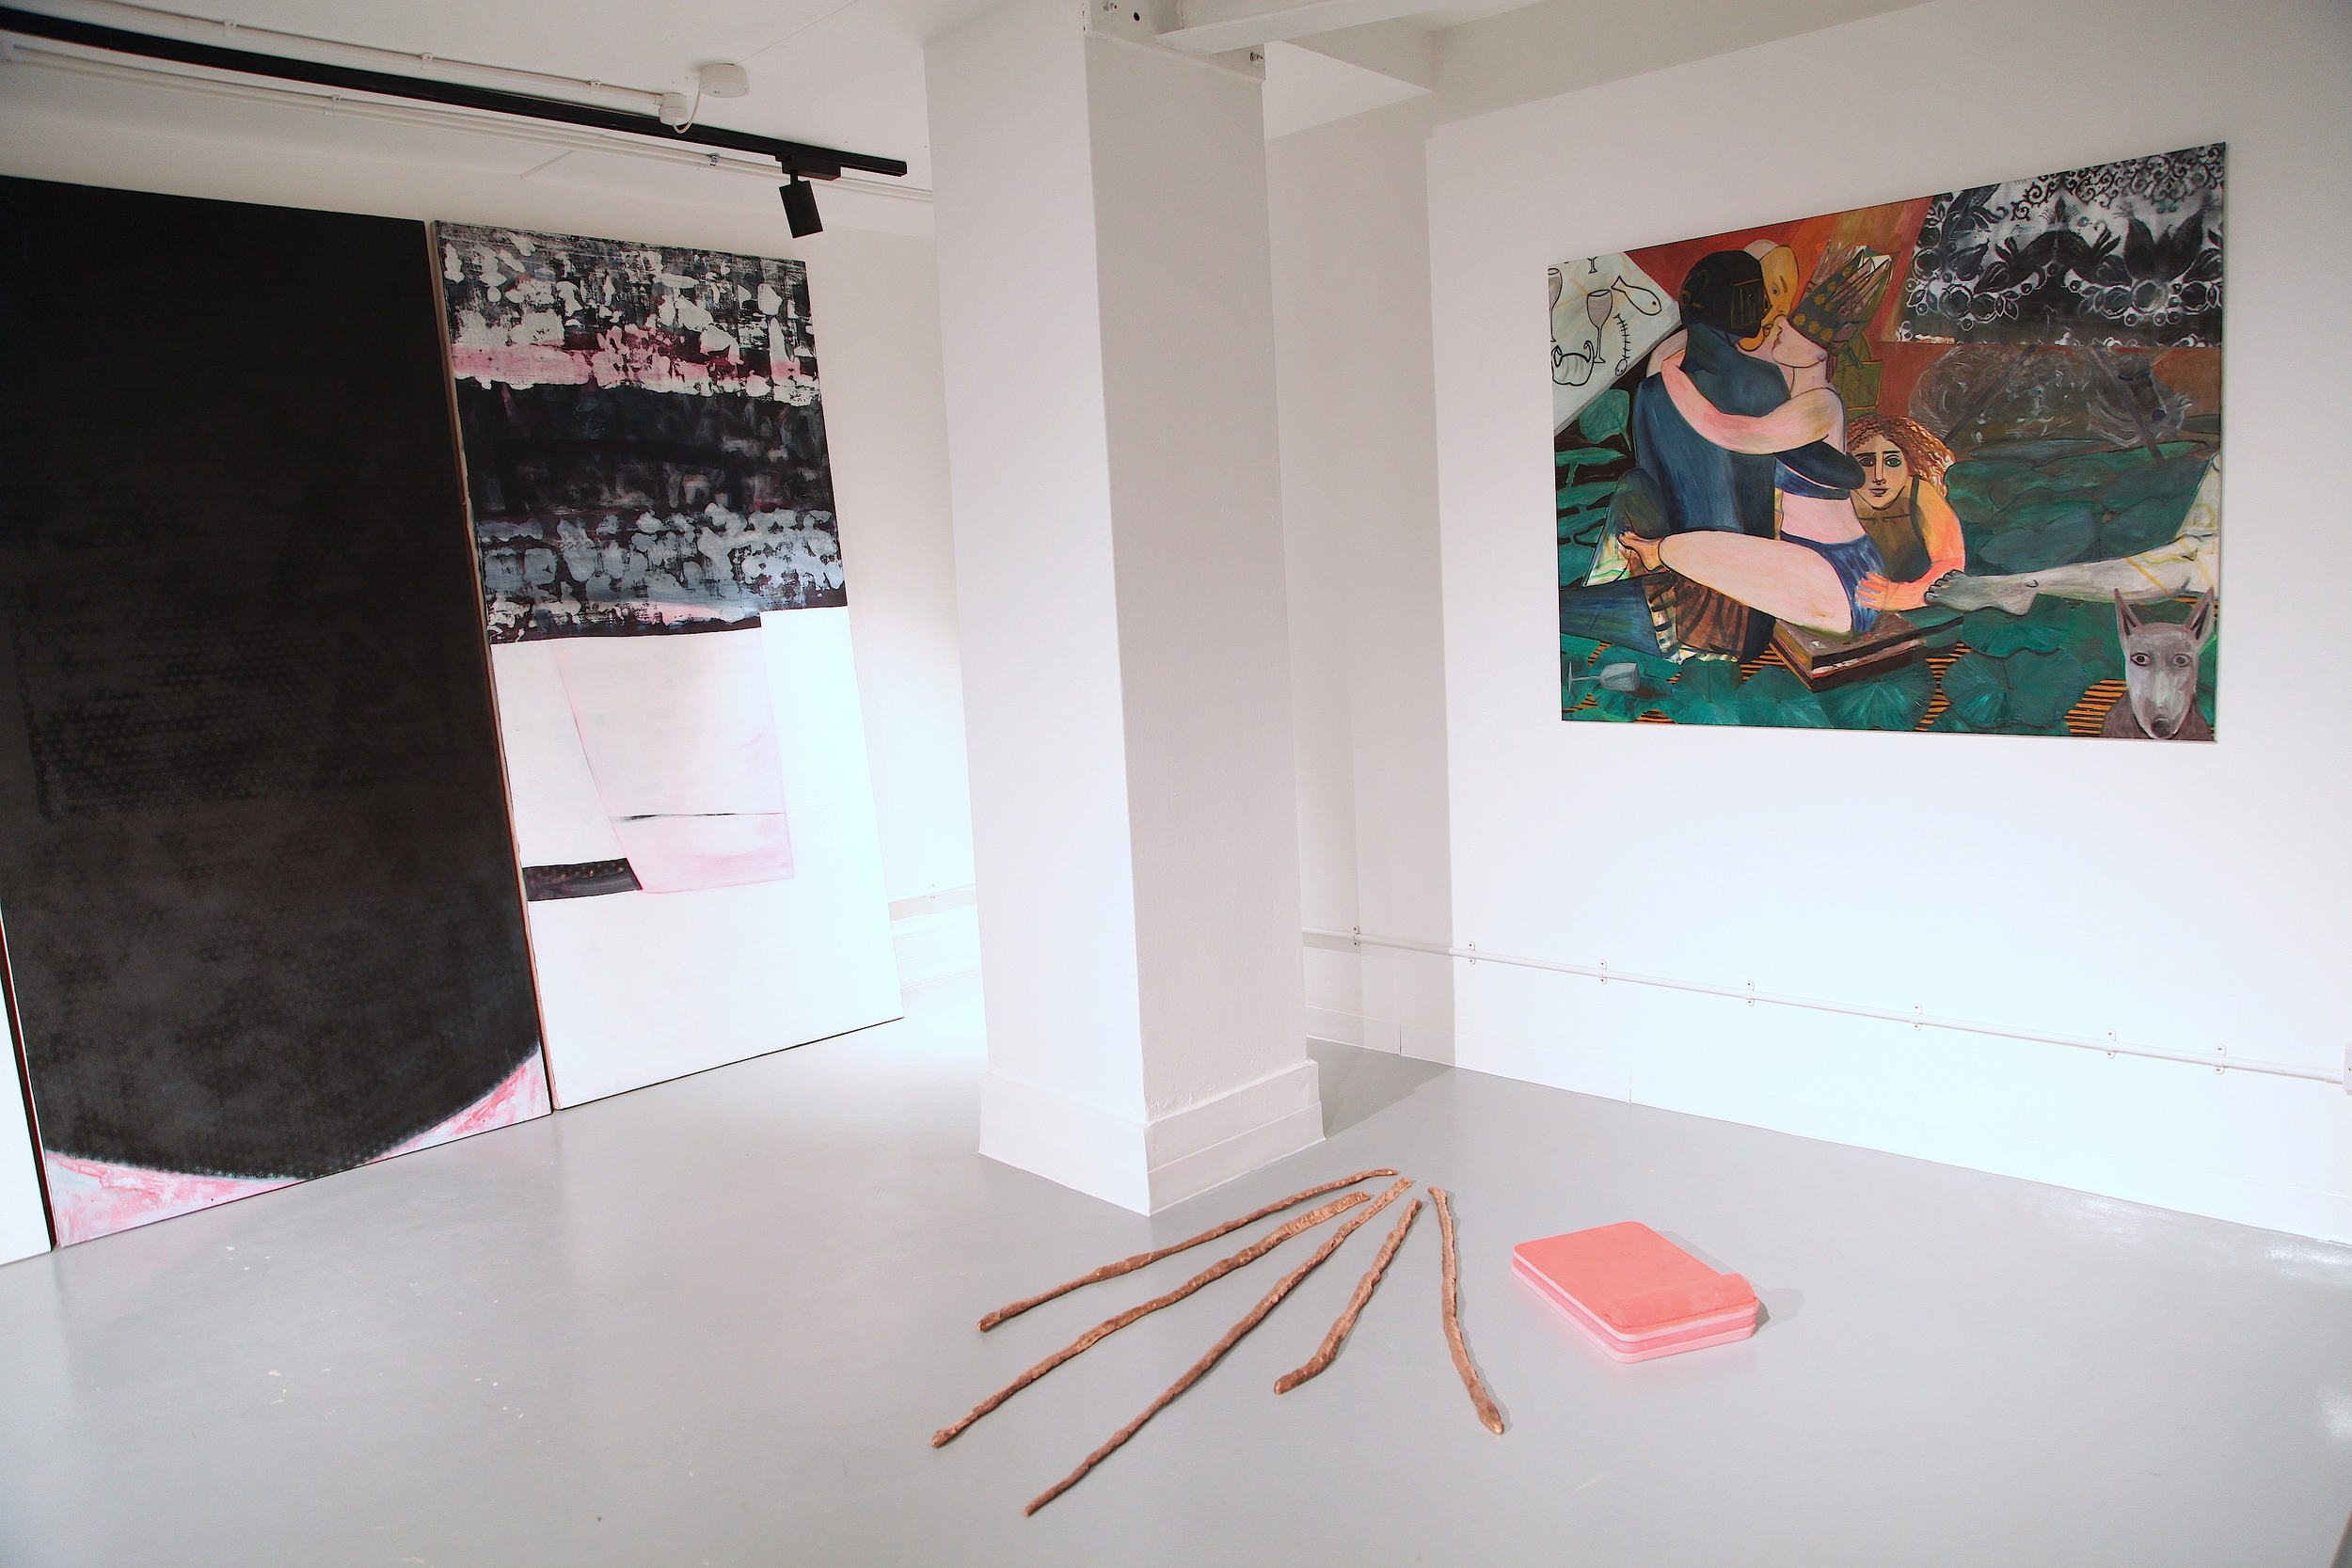 'Pandiculate: The Joy of Stretching' artists Katie Hayward, Sarah Roberts and Harriet Poznanksy. Curated by Gabriella Sonabend and Hannah Thorne.